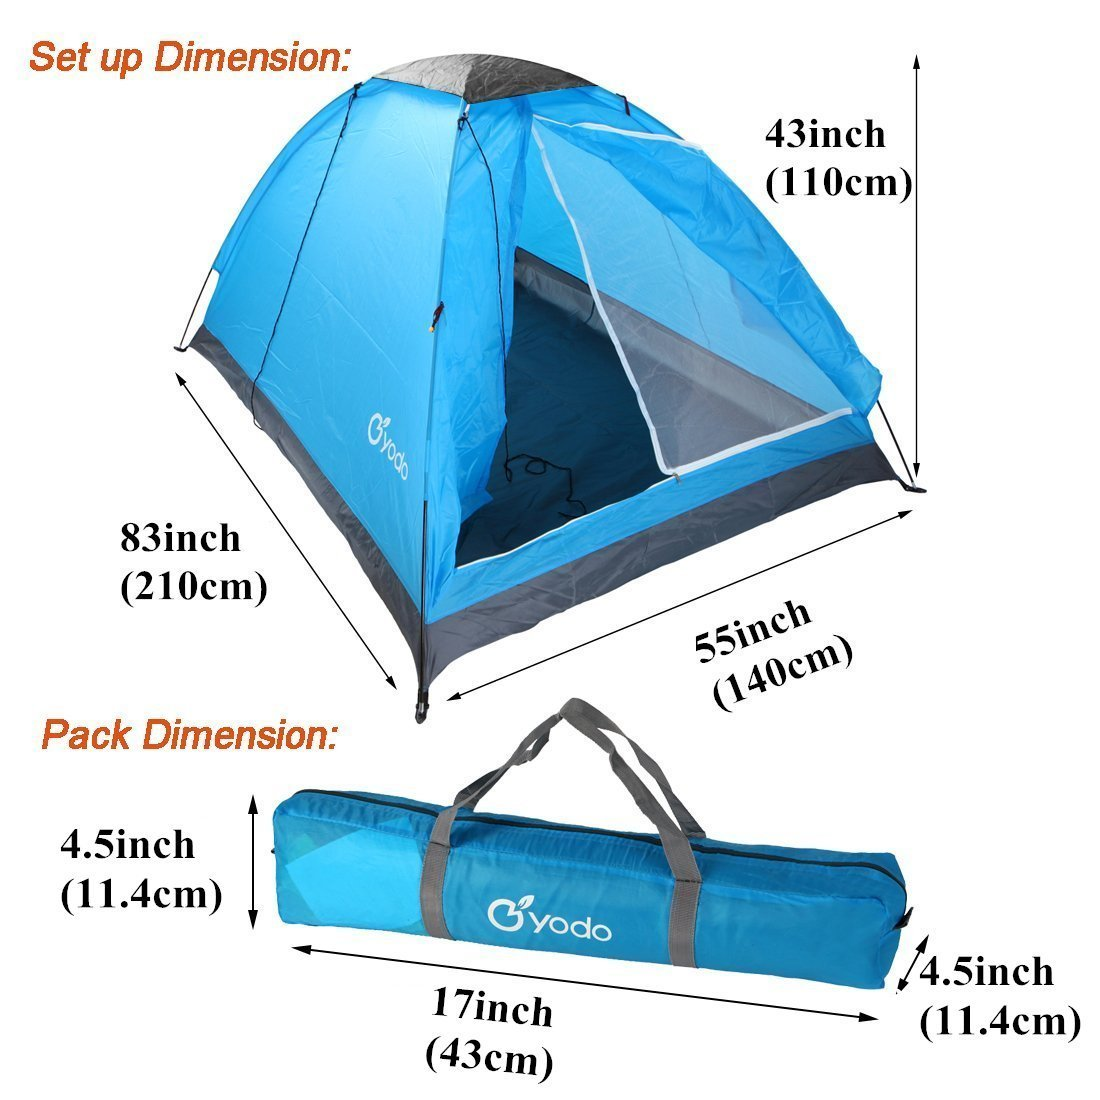 yodo Lightweight 2 Person Camping Backpacking Tent with Carry Bag Multi